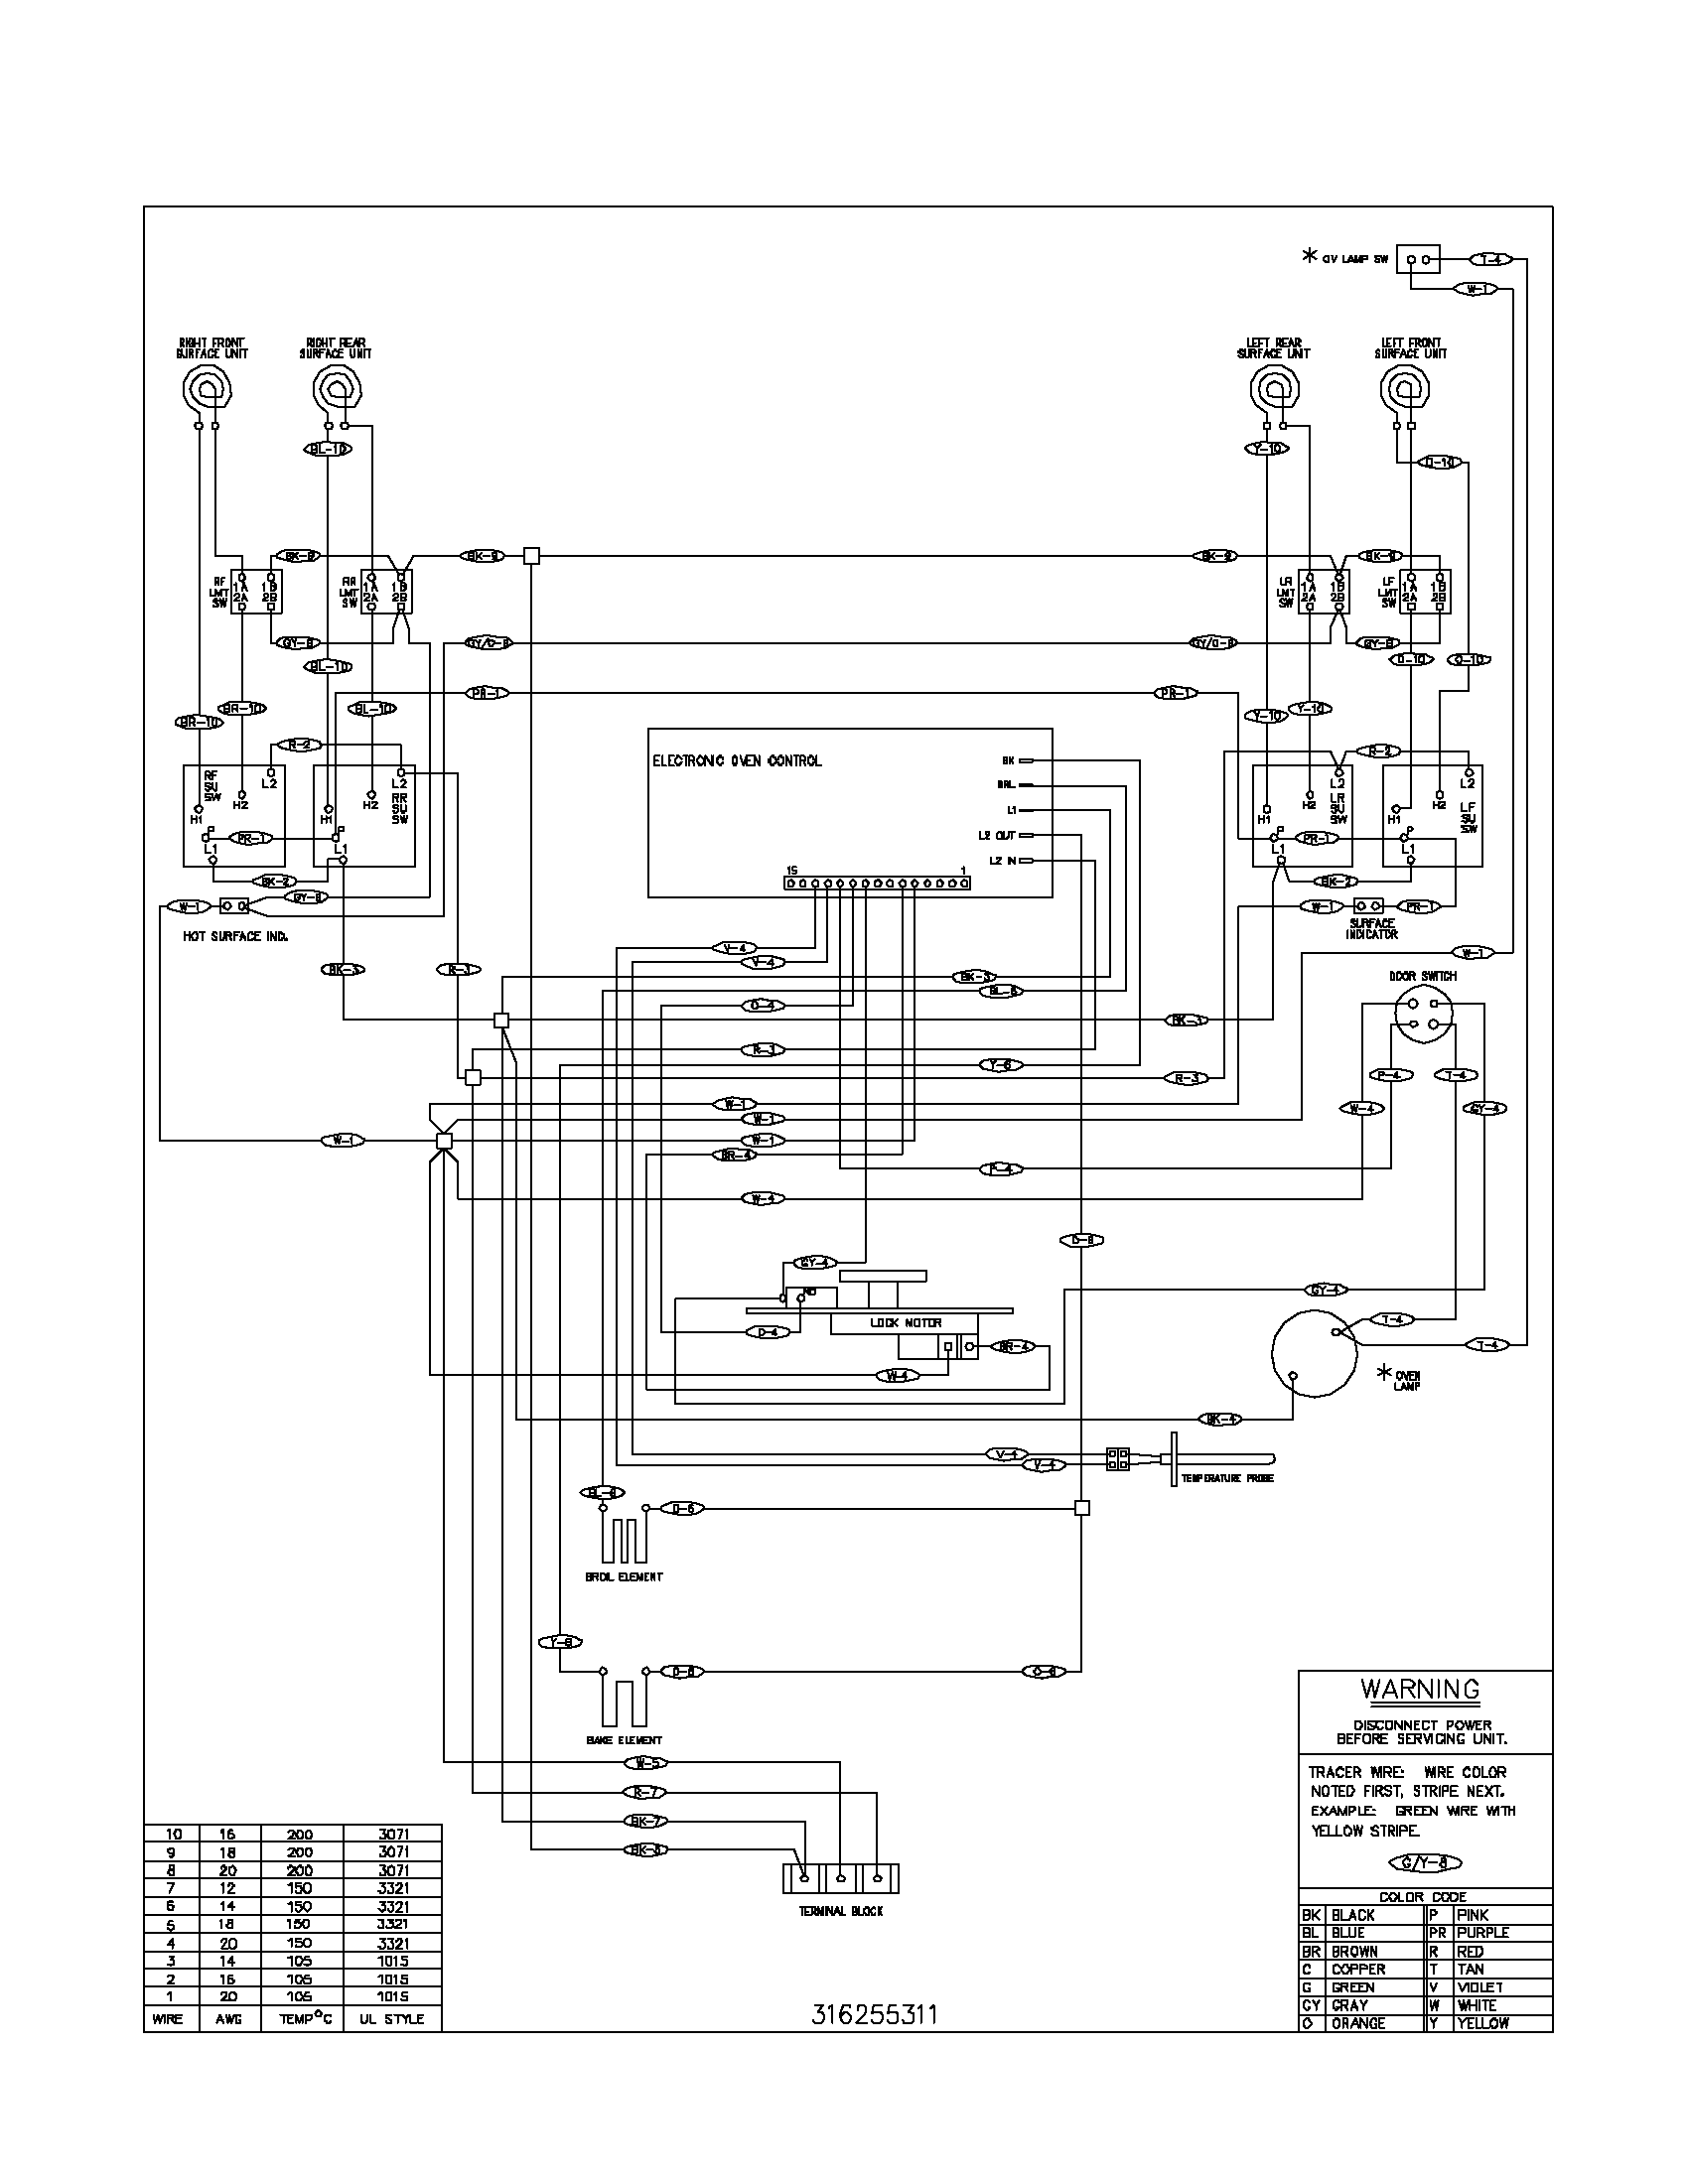 wiring diagram parts kenmore electric range wiring diagram kenmore wiring diagrams  at reclaimingppi.co